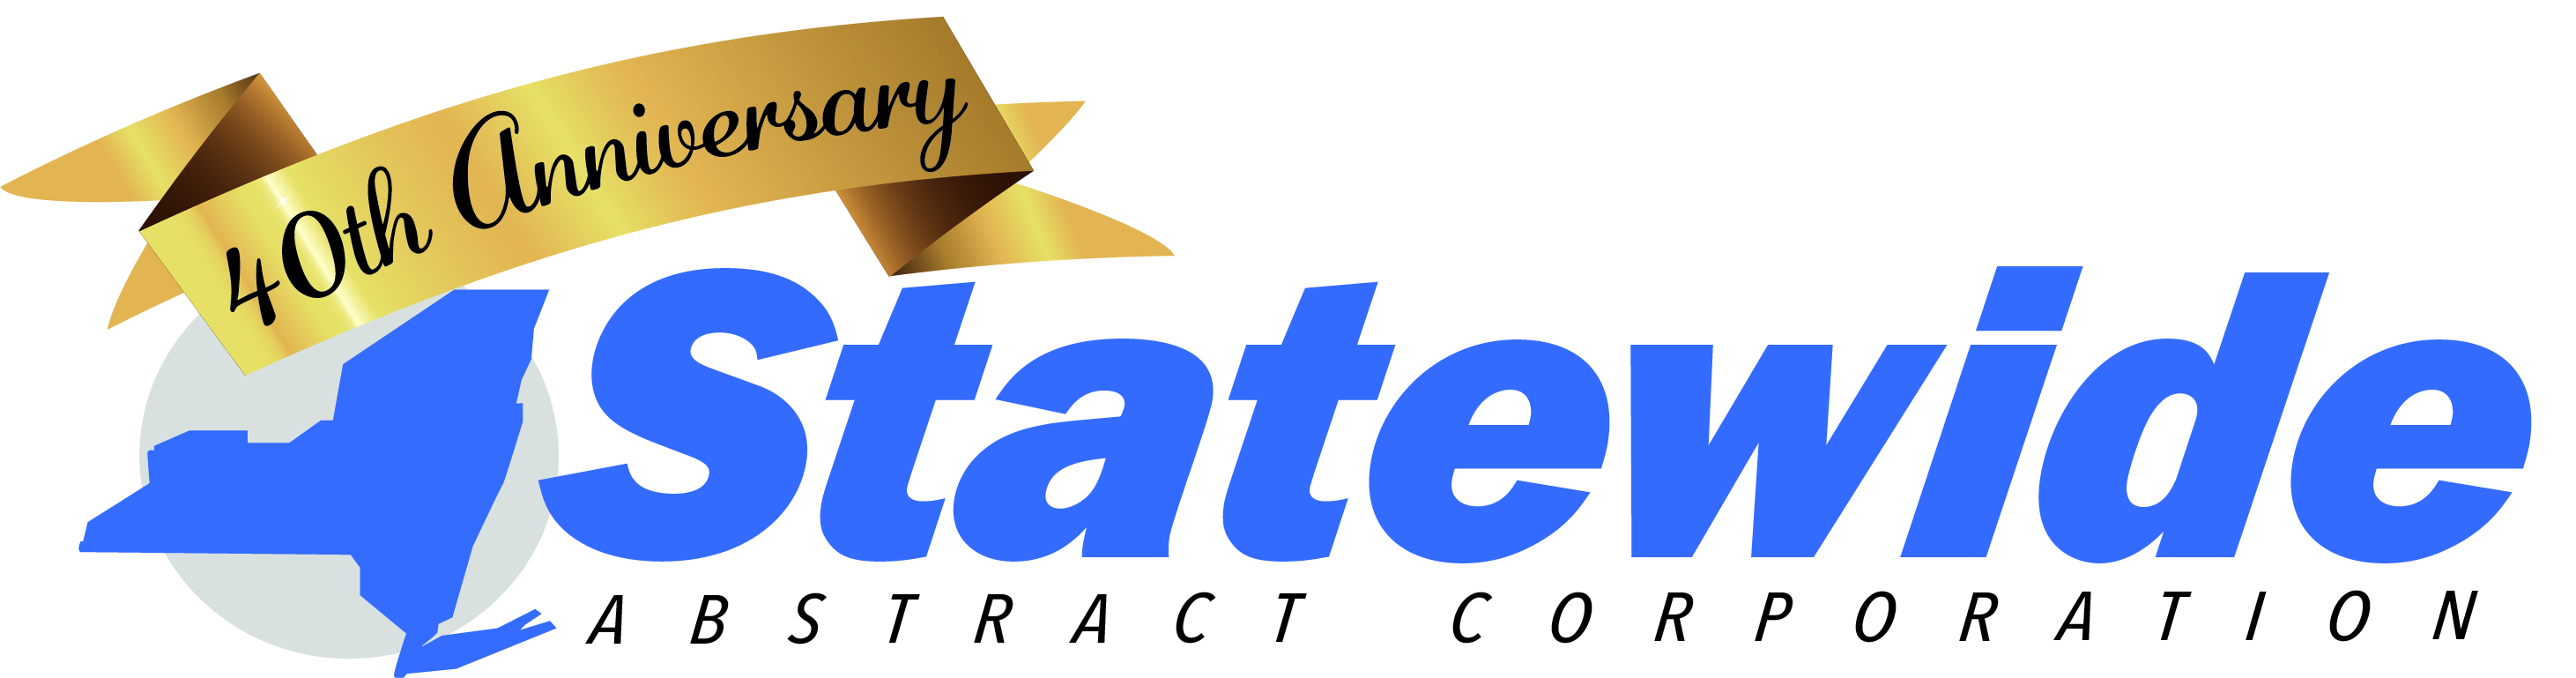 Statewide Abstract Logo 40th